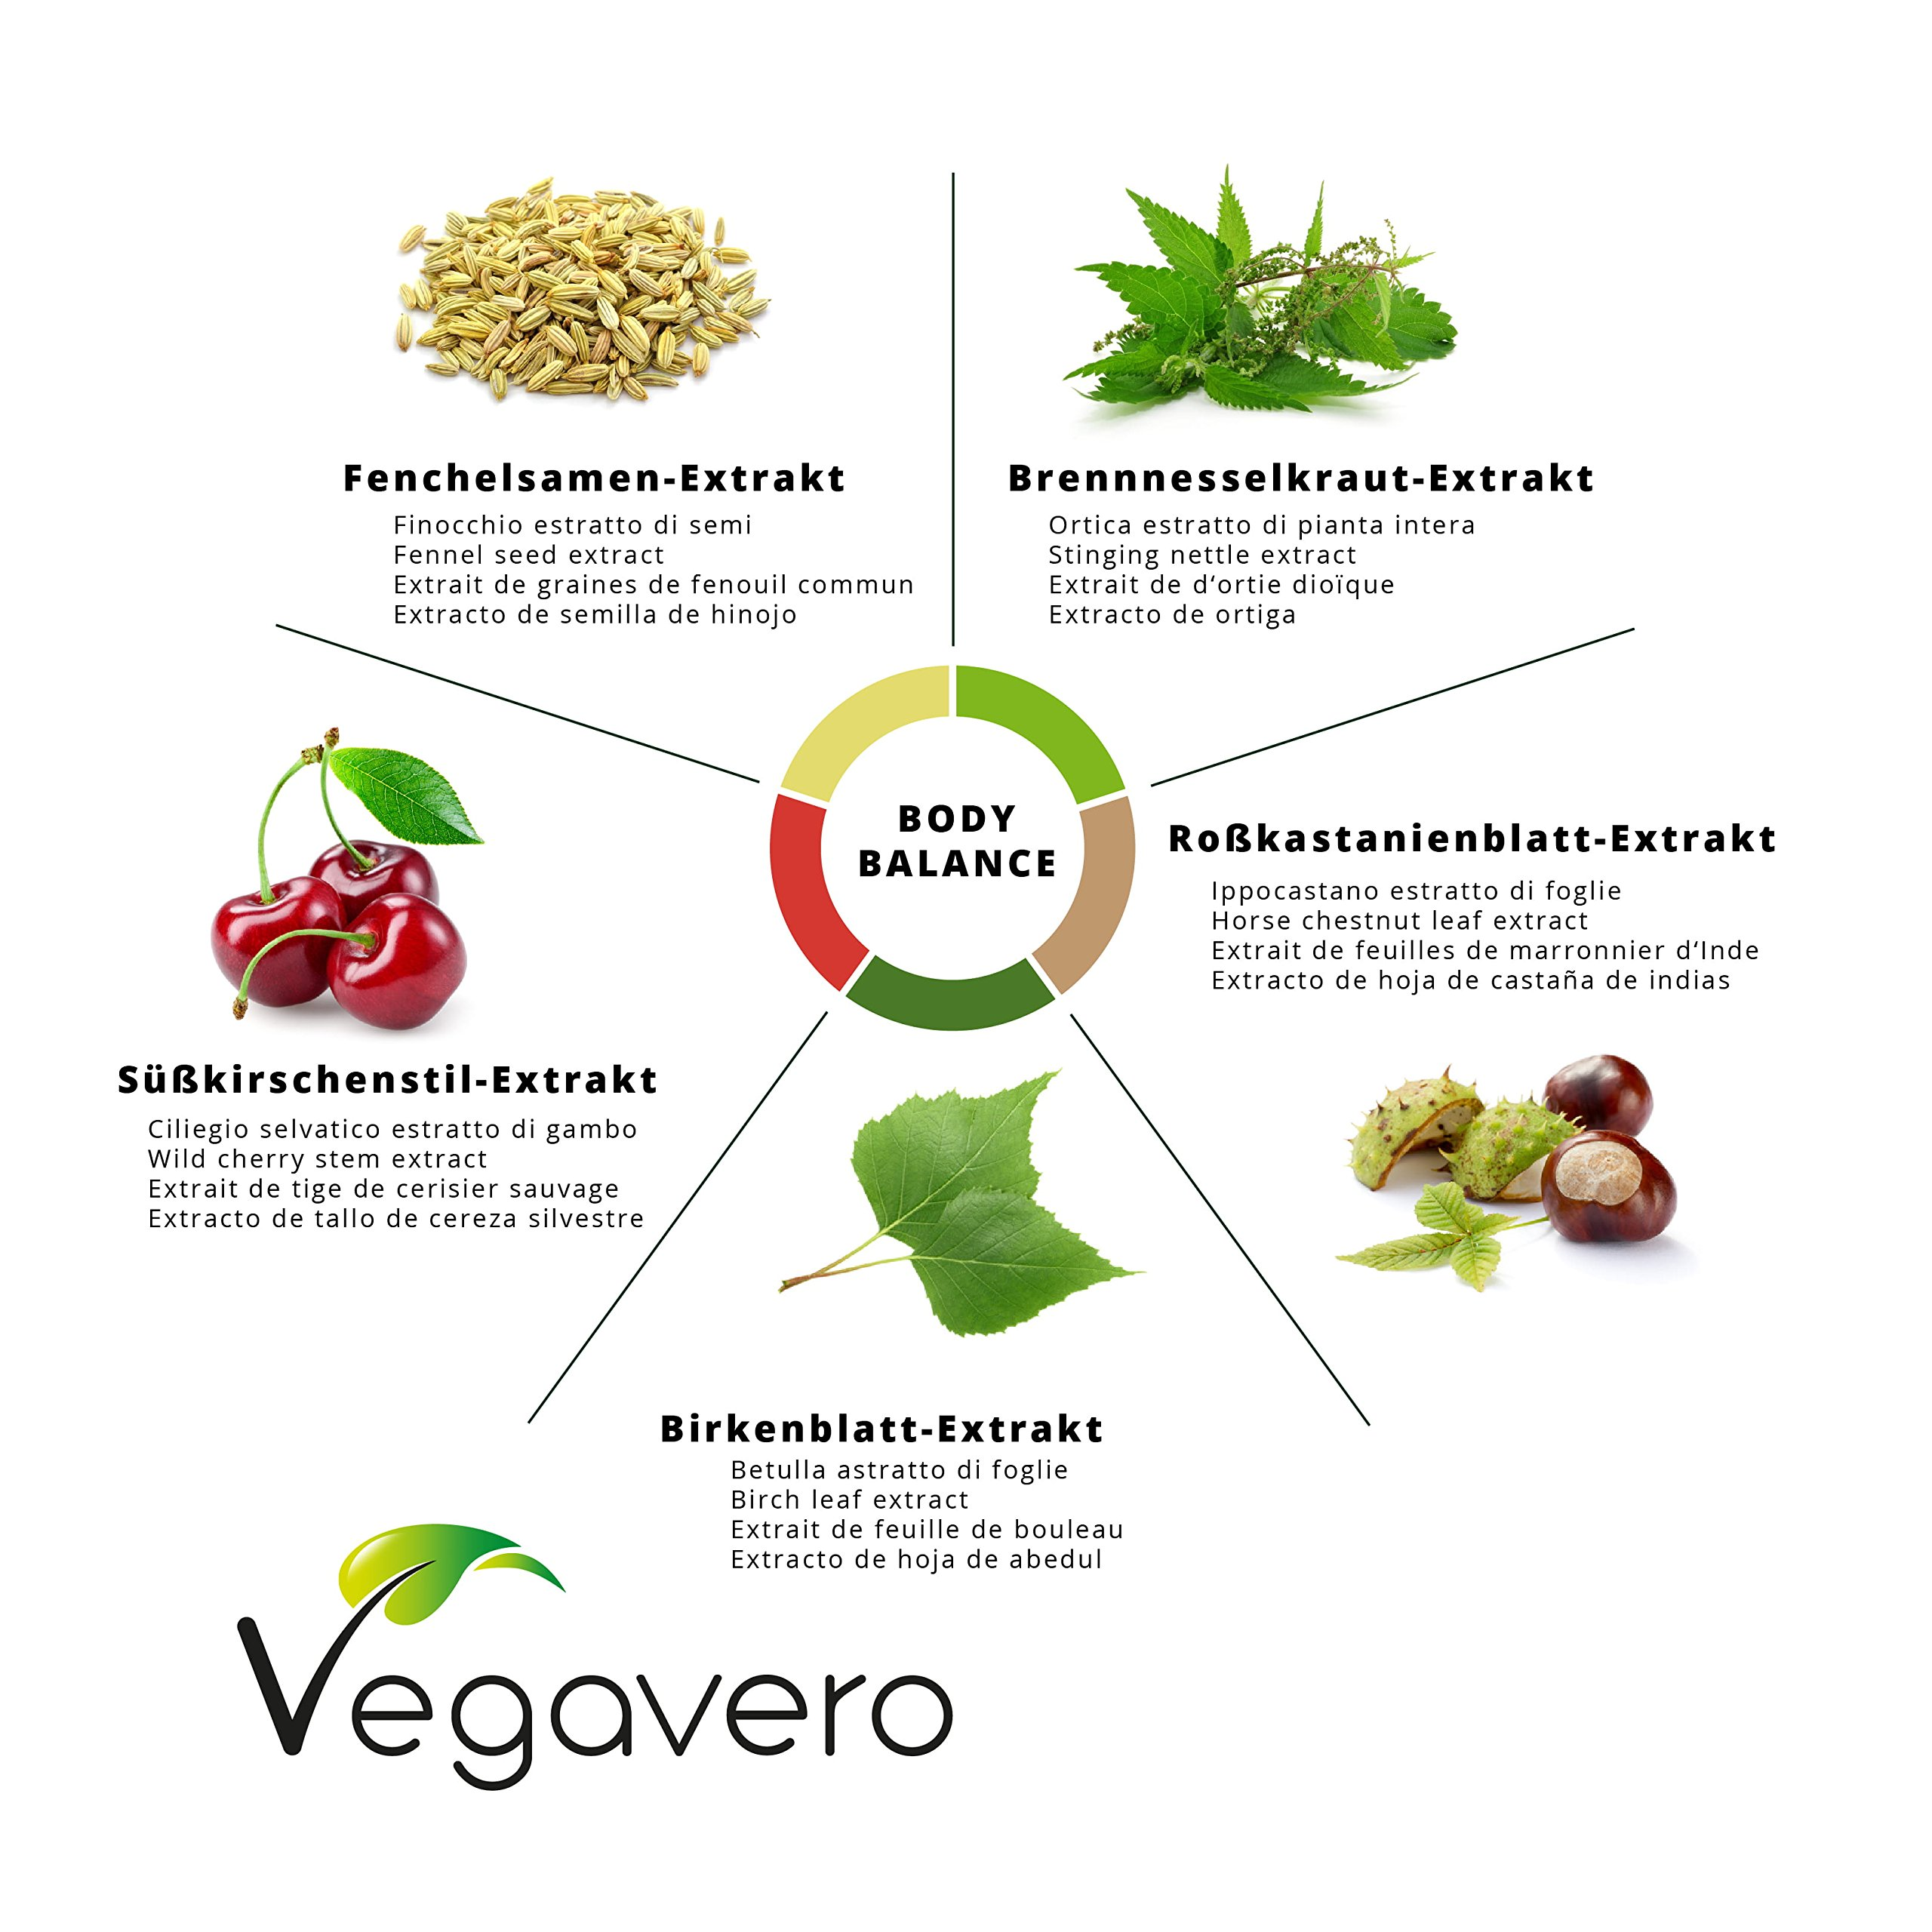 NEW: Body Balance Complex   Natural Diuretic, Digestive, Detox & Cleanse Blend   Prevent Water Retention & Eliminate Toxins   Birch Leaves, Nettle, Fennel Seeds, Chestnut Leaves & Wild Cherry Stems   120 Capsules   VEGAN by Vegavero